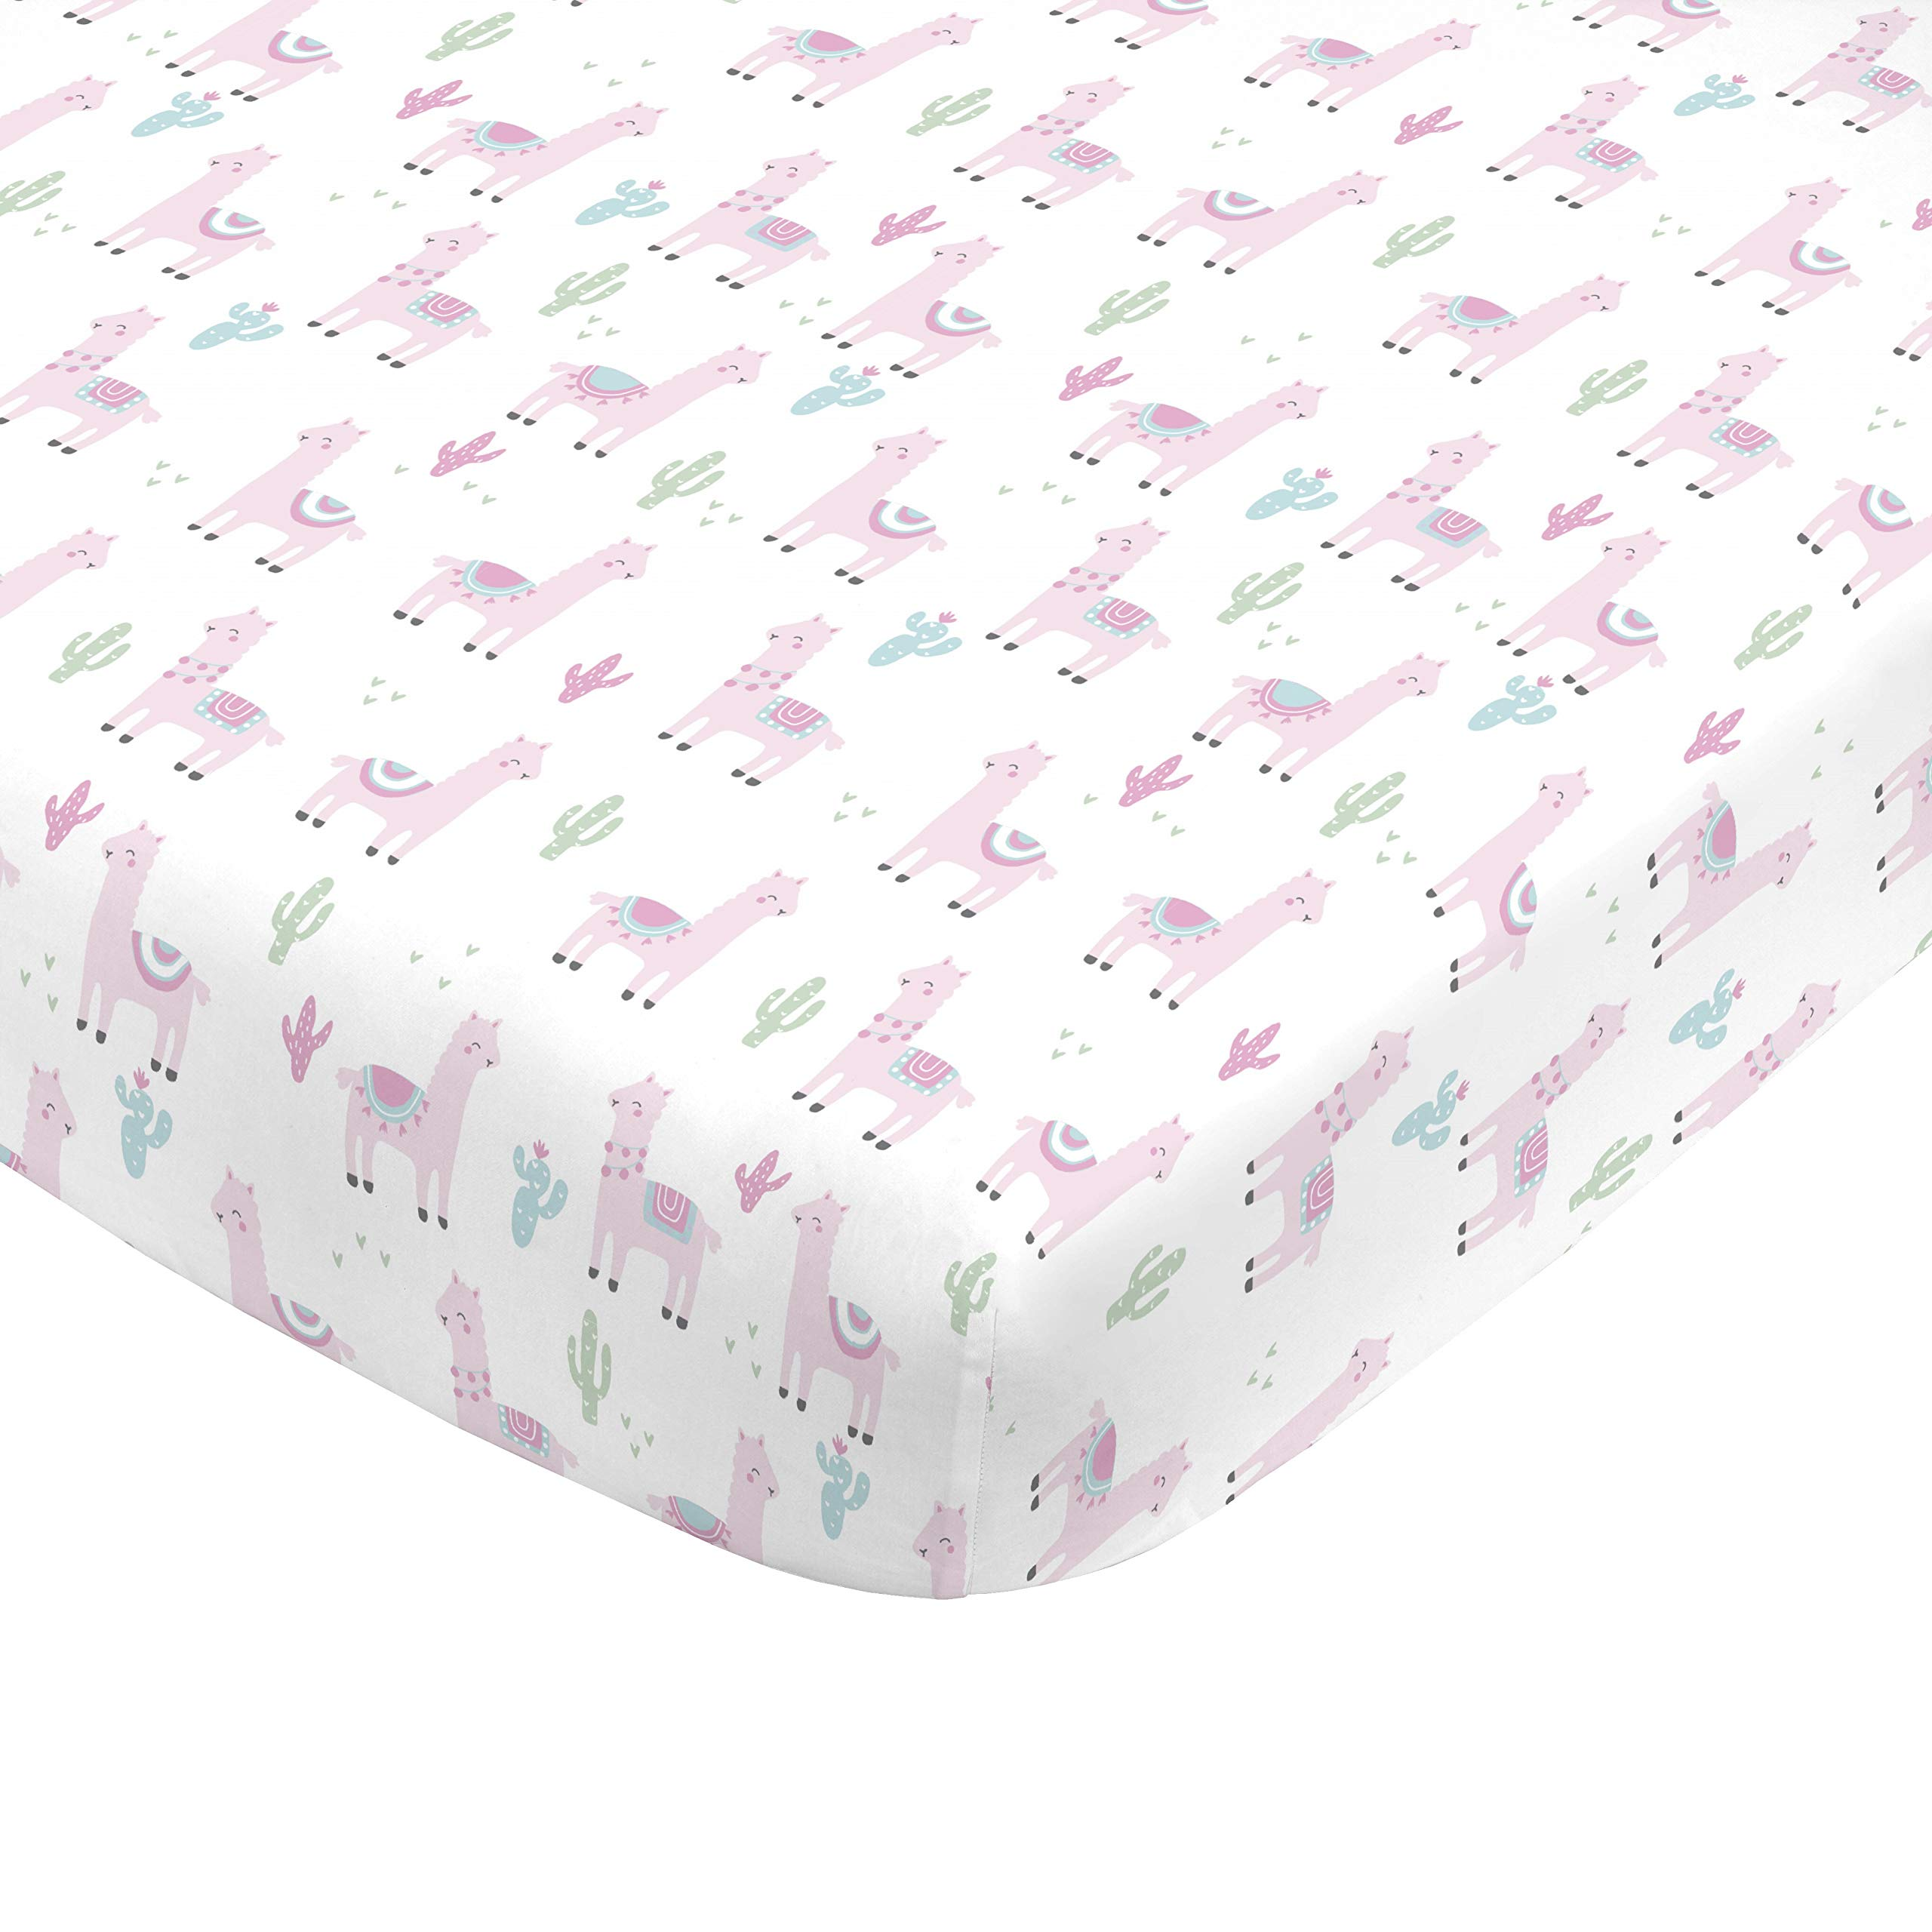 NoJo Super Soft Pink Llama Nursery Crib Fitted Sheet, Pink, White, Green by NoJo